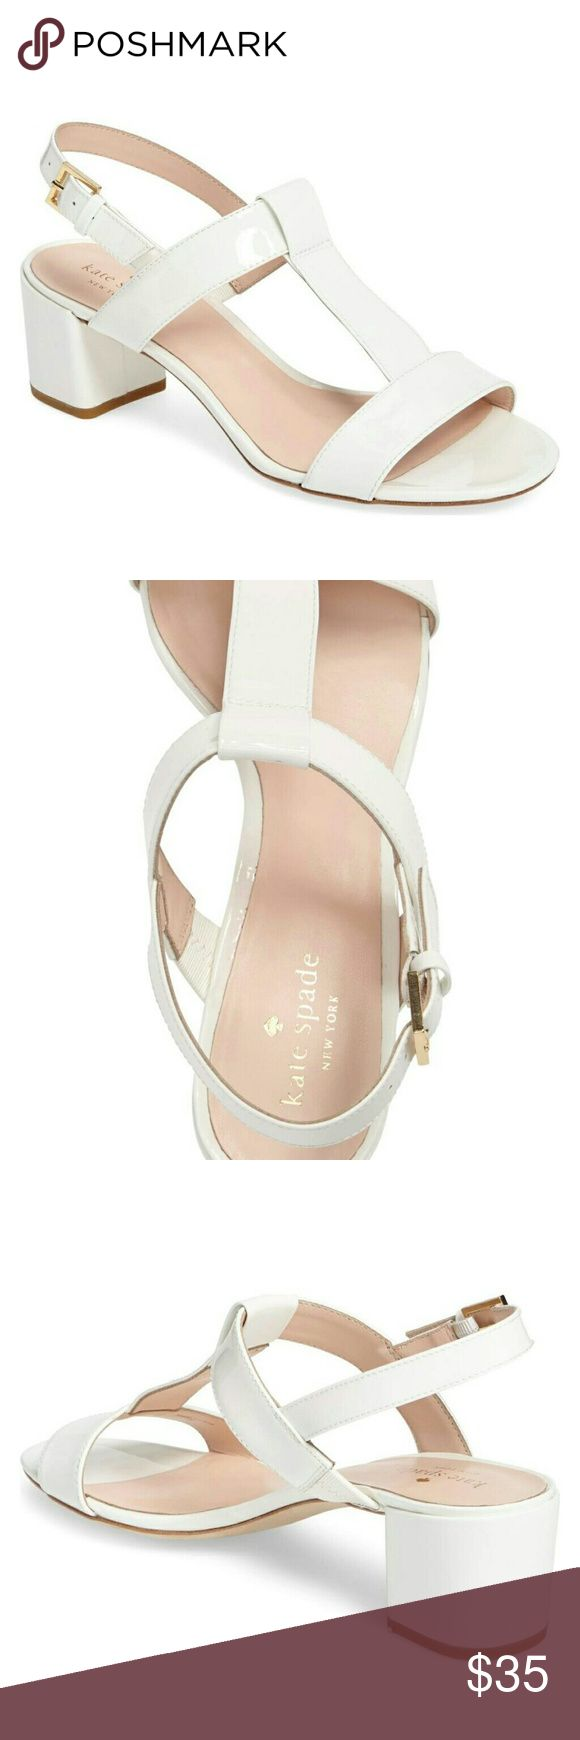 KATE Spade Patricia white patent sandal unworn These Kate Spade patent vintage style low block heel shoes are unworn and the only thing that separates them from a brand new pair is the sharpie heart drawn on the sole! kate spade Shoes